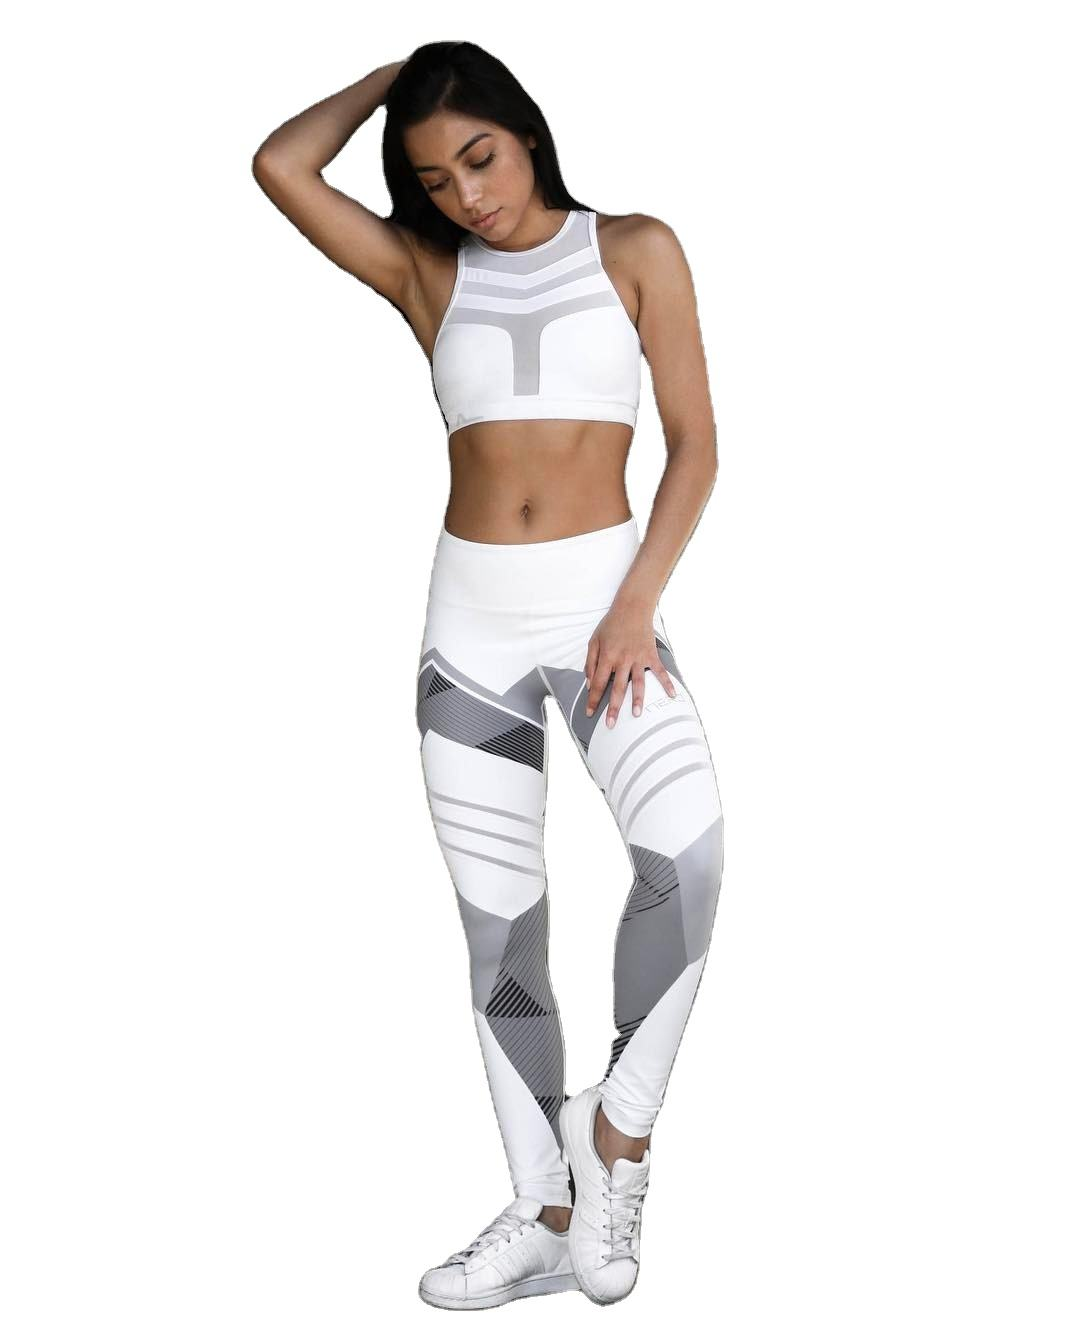 Custom Mode Fitness Gym Ademend Warm Workout Fitness Vrouw Hoge Taille Compressie Strakke <span class=keywords><strong>Leggings</strong></span> <span class=keywords><strong>Xl</strong></span>